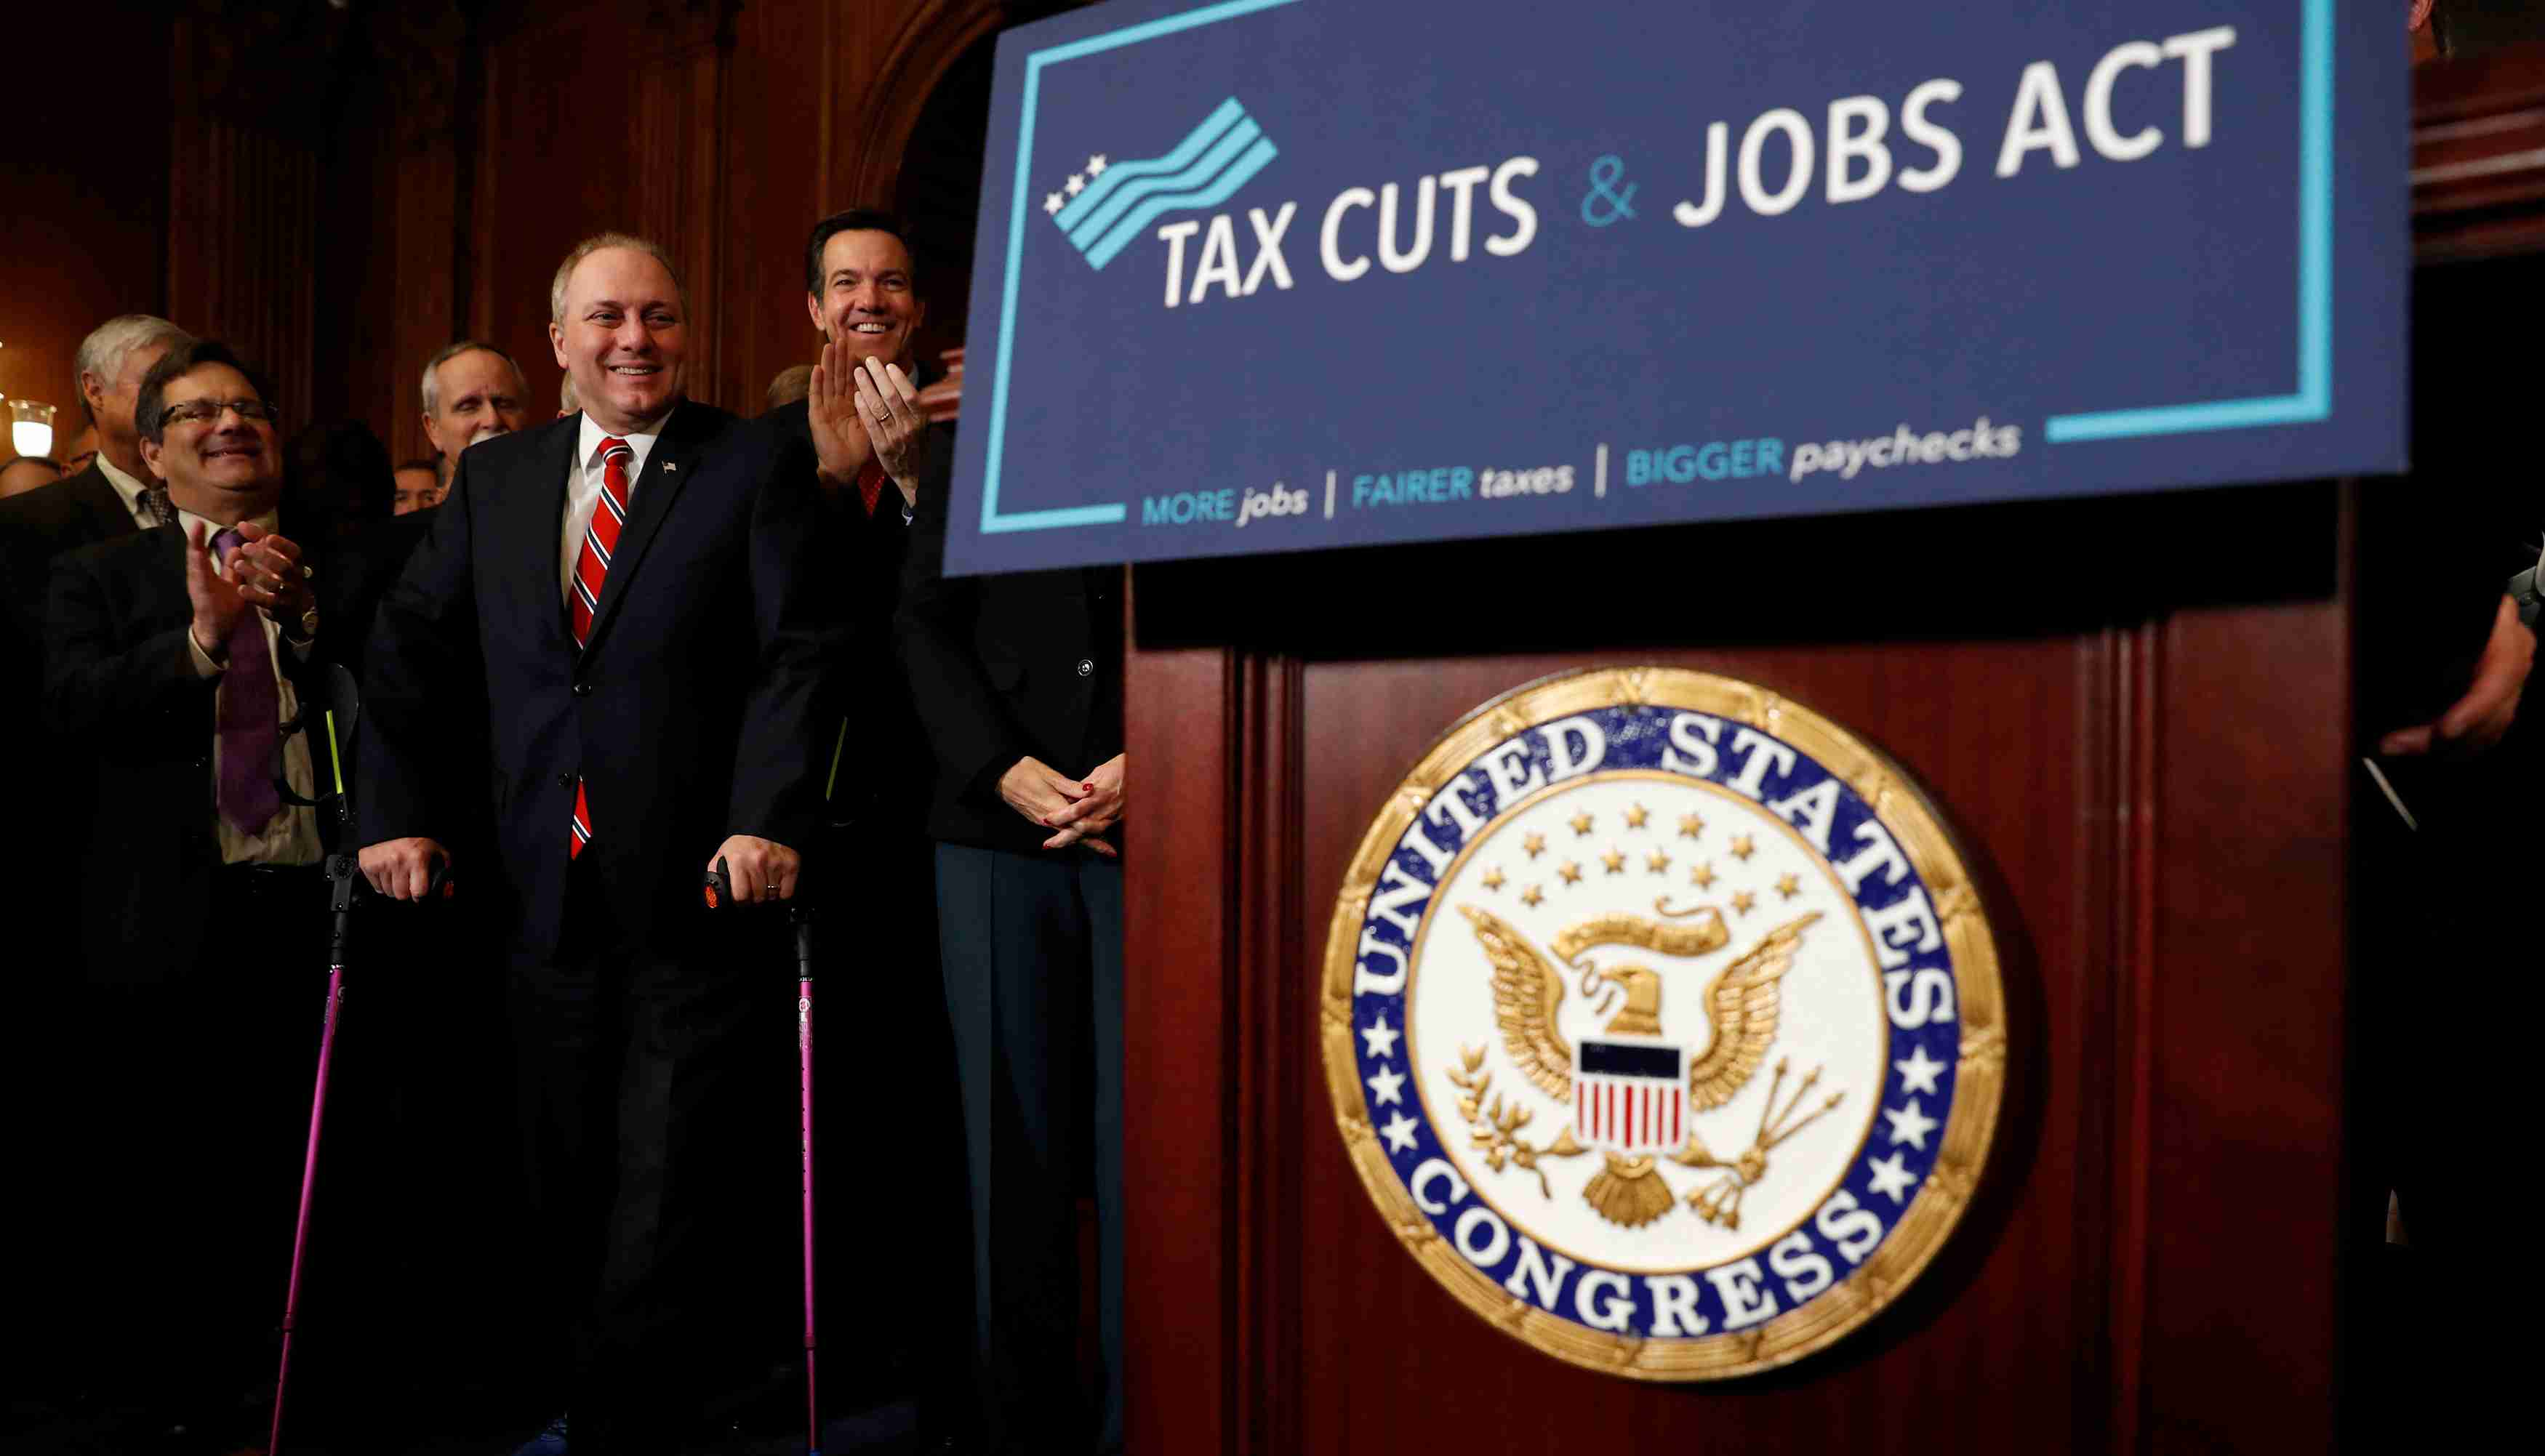 "House Majority Whip Rep. Steve Scalise (R-LA) looks on during a news conference announcing the passage of the ""Tax Cuts and Jobs Act"" at the U.S. Capitol in Washington, U.S., November 16, 2017. REUTERS/Aaron P. Bernstein - RC1B213C57E0"